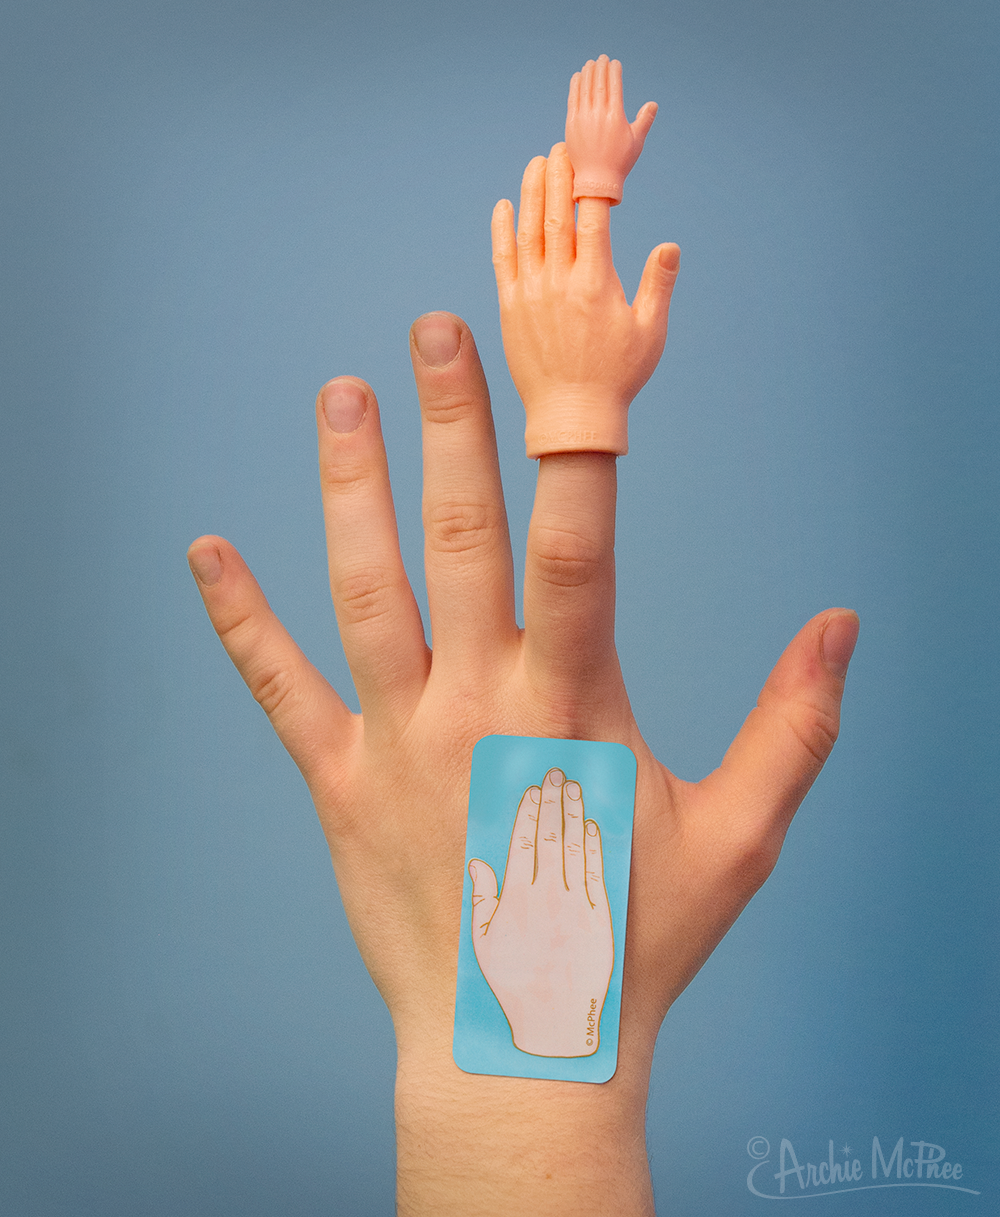 Hands - Finger Hands and Tiny Hands – Archie McPhee